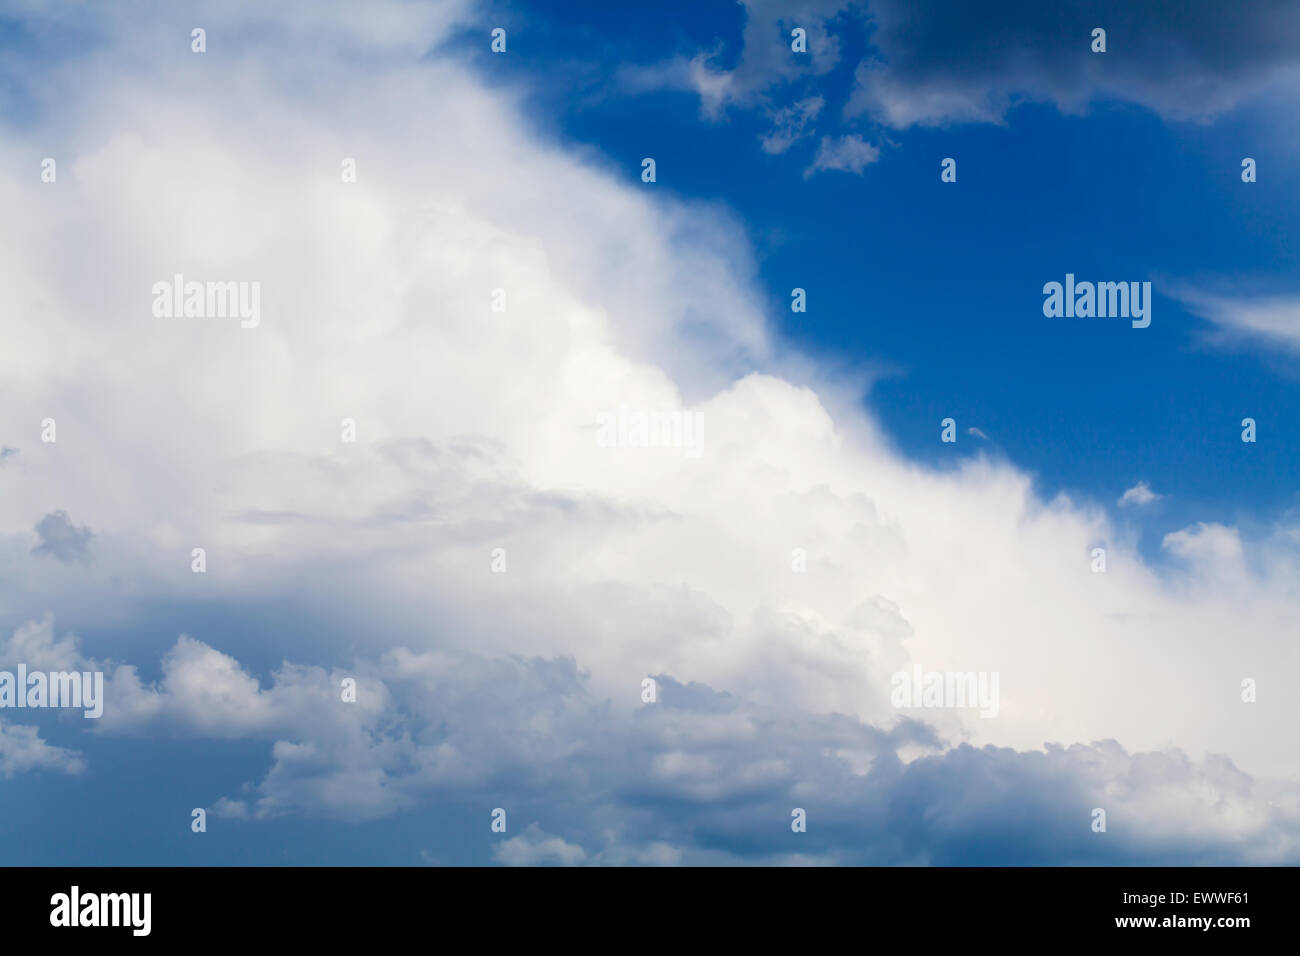 Blue sky with rainy clouds. View from airplane - Stock Image